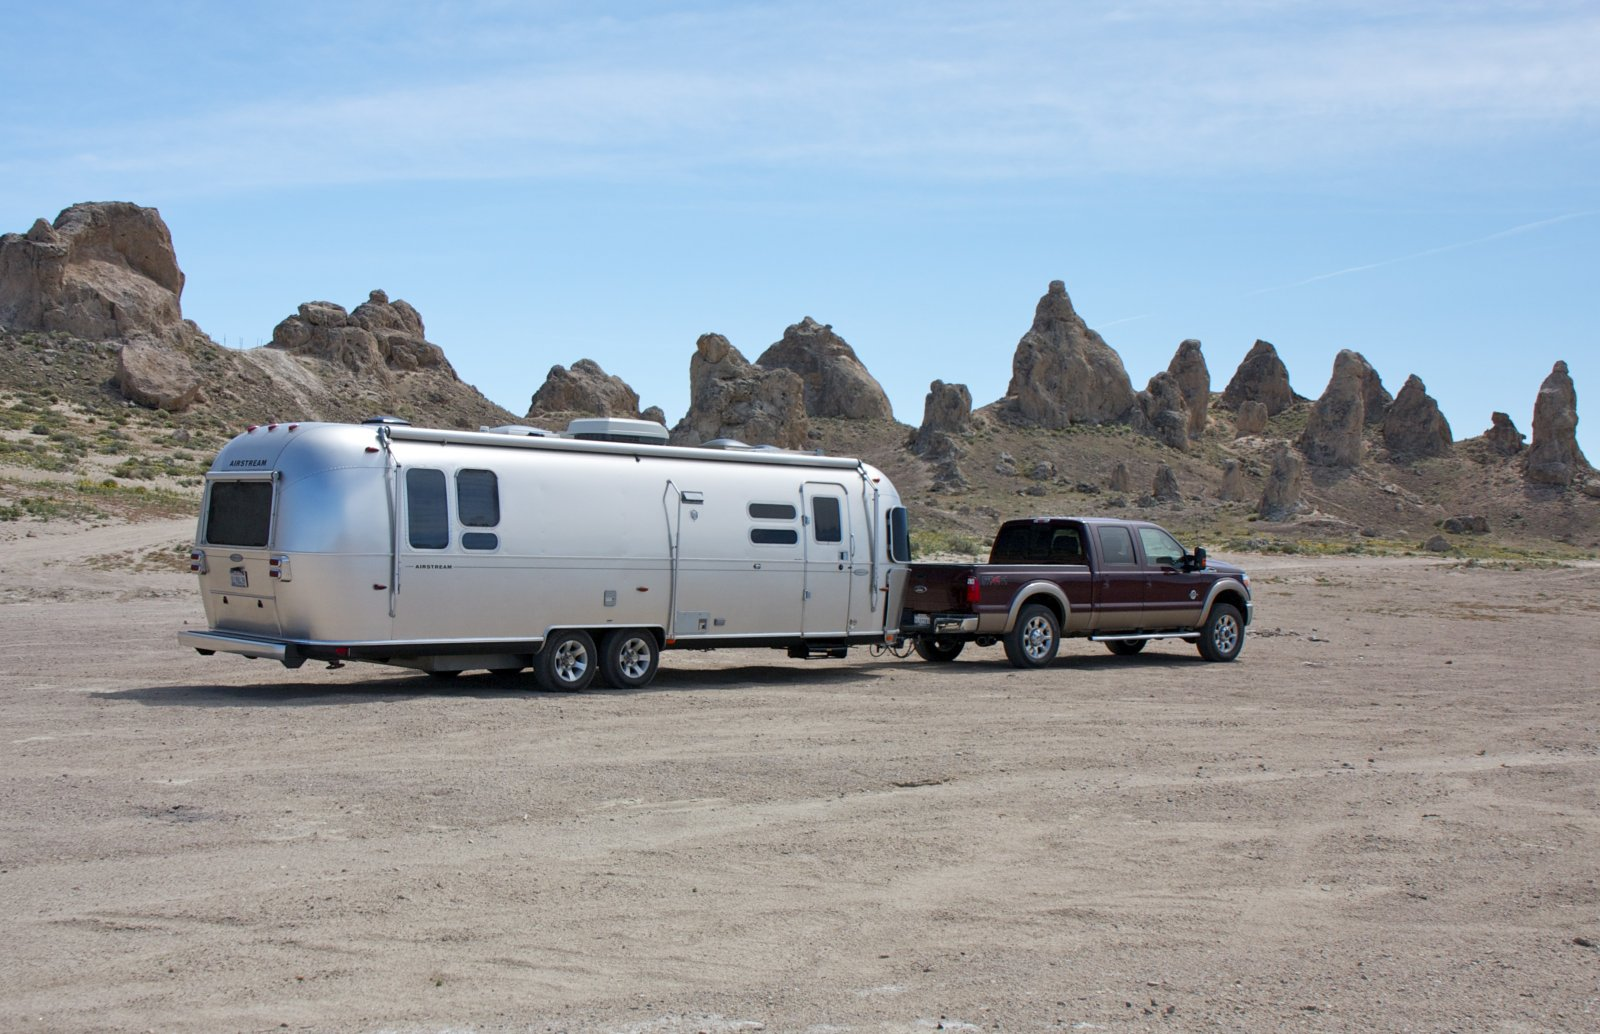 Click image for larger version  Name:AS at trona.jpg Views:95 Size:275.4 KB ID:125788